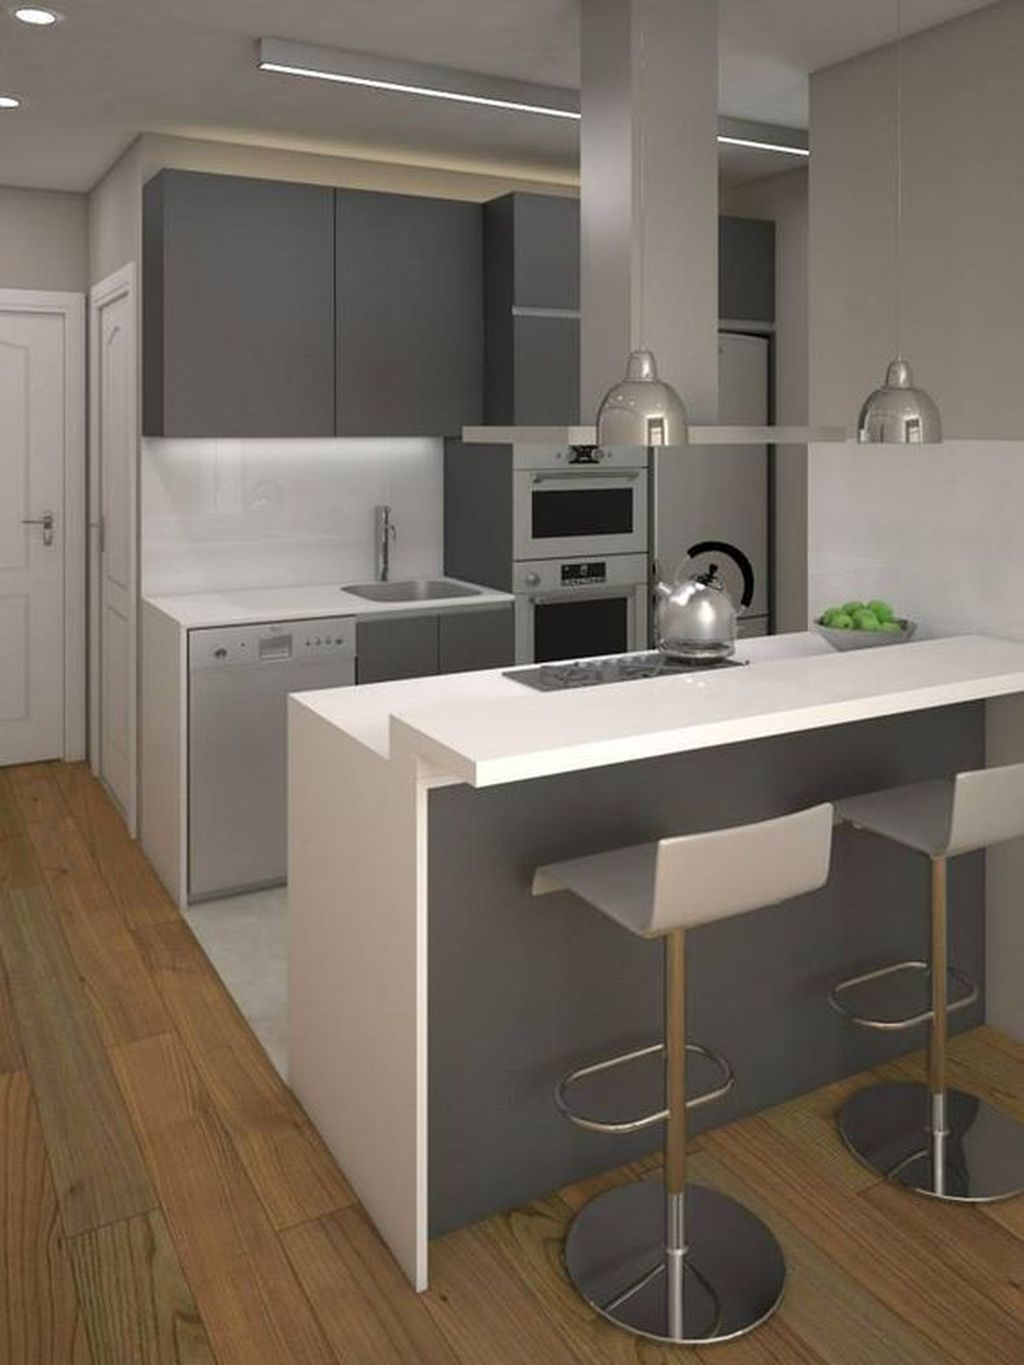 Best Tiny Kitchen Design Ideas For Your Small Space Inspiration 39